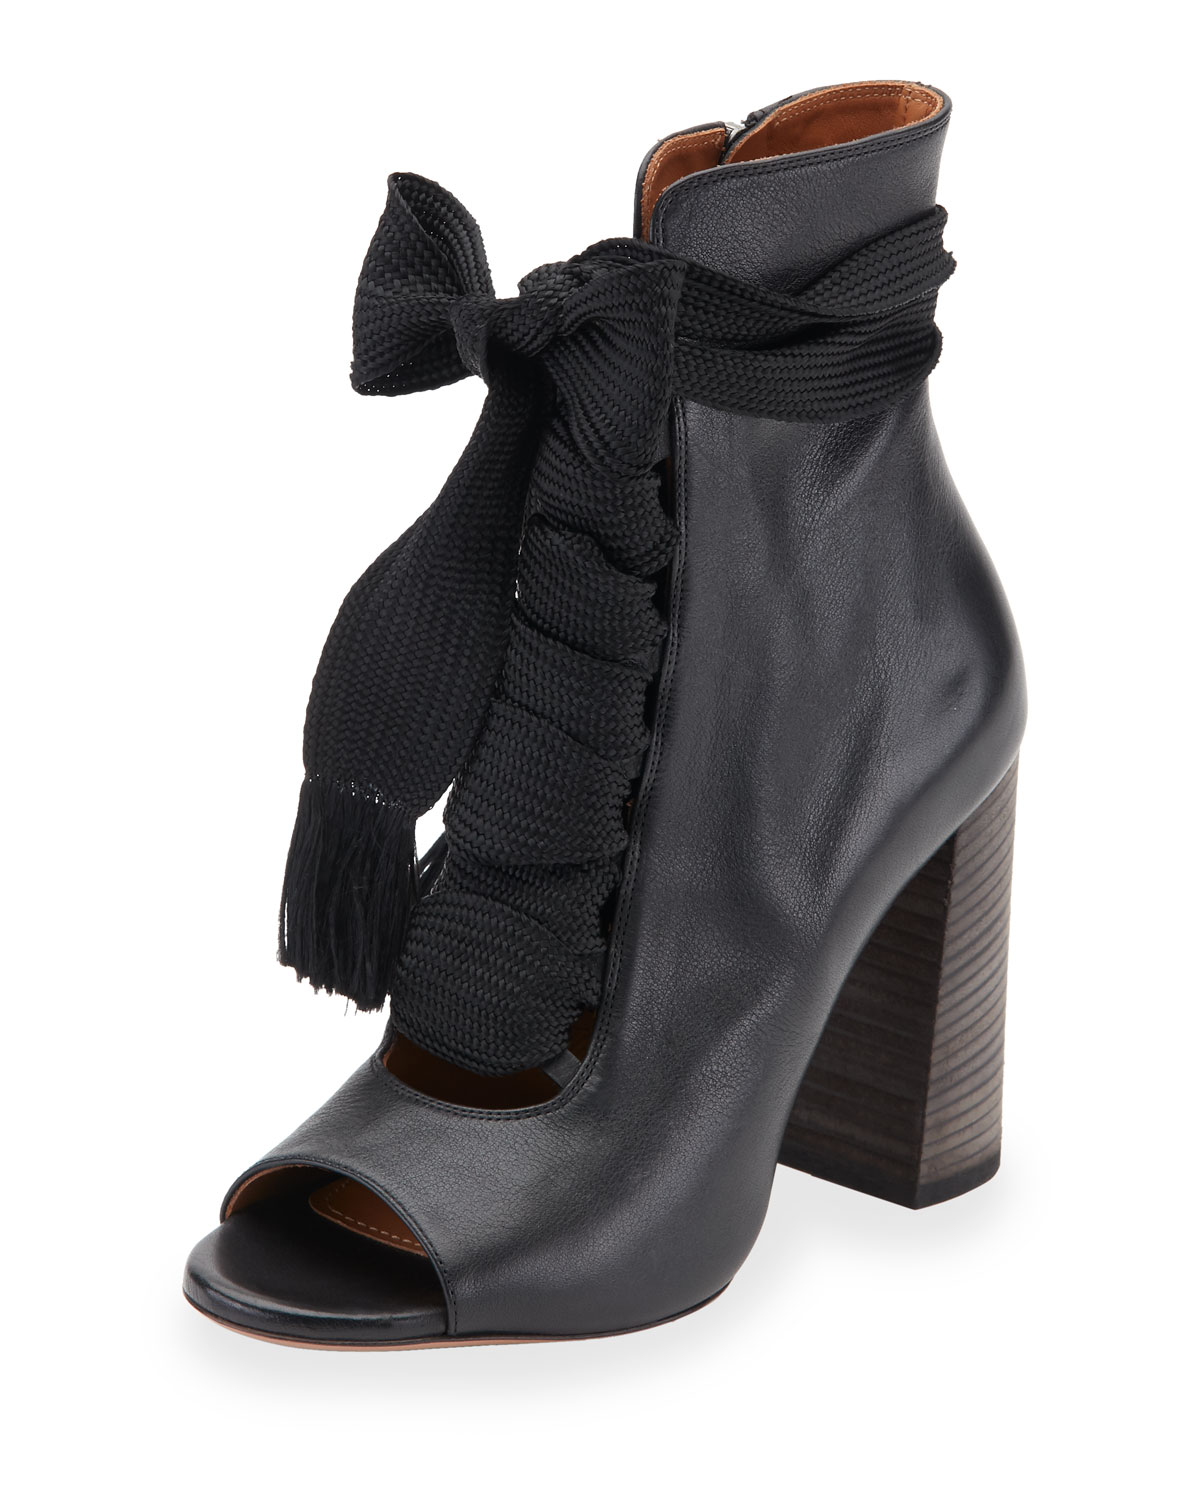 Chloé 70MM LEATHER ANKLE BOOTS